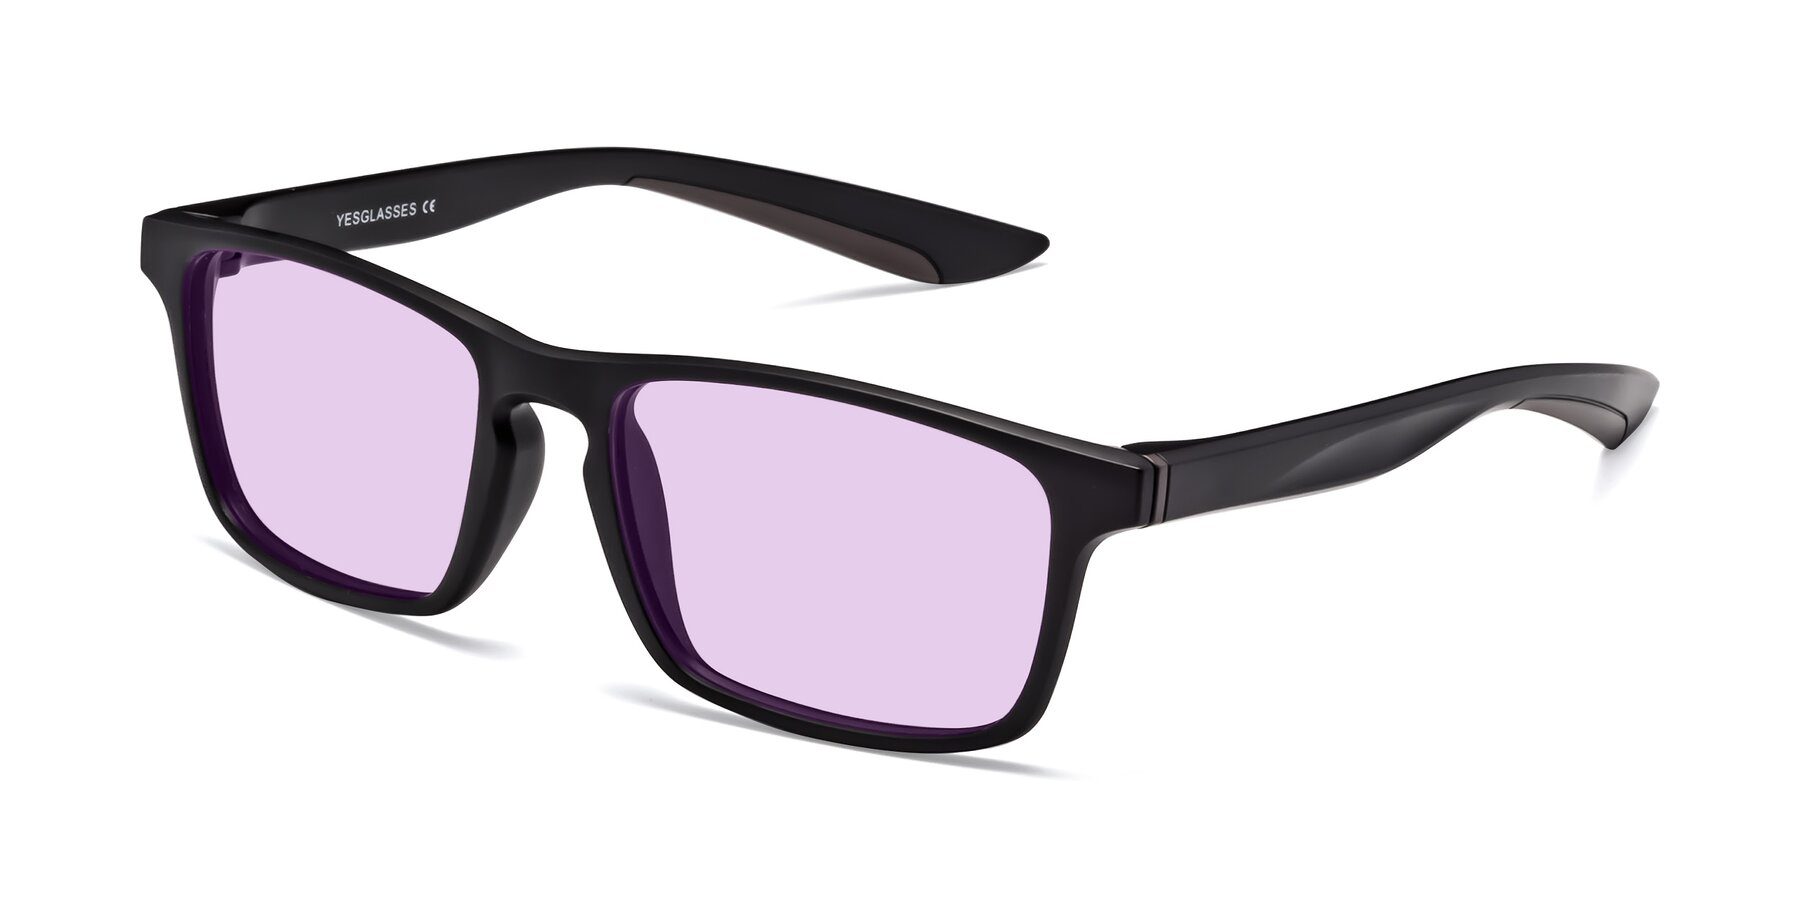 Angle of Passion in Matte Black-Coffee with Light Purple Tinted Lenses